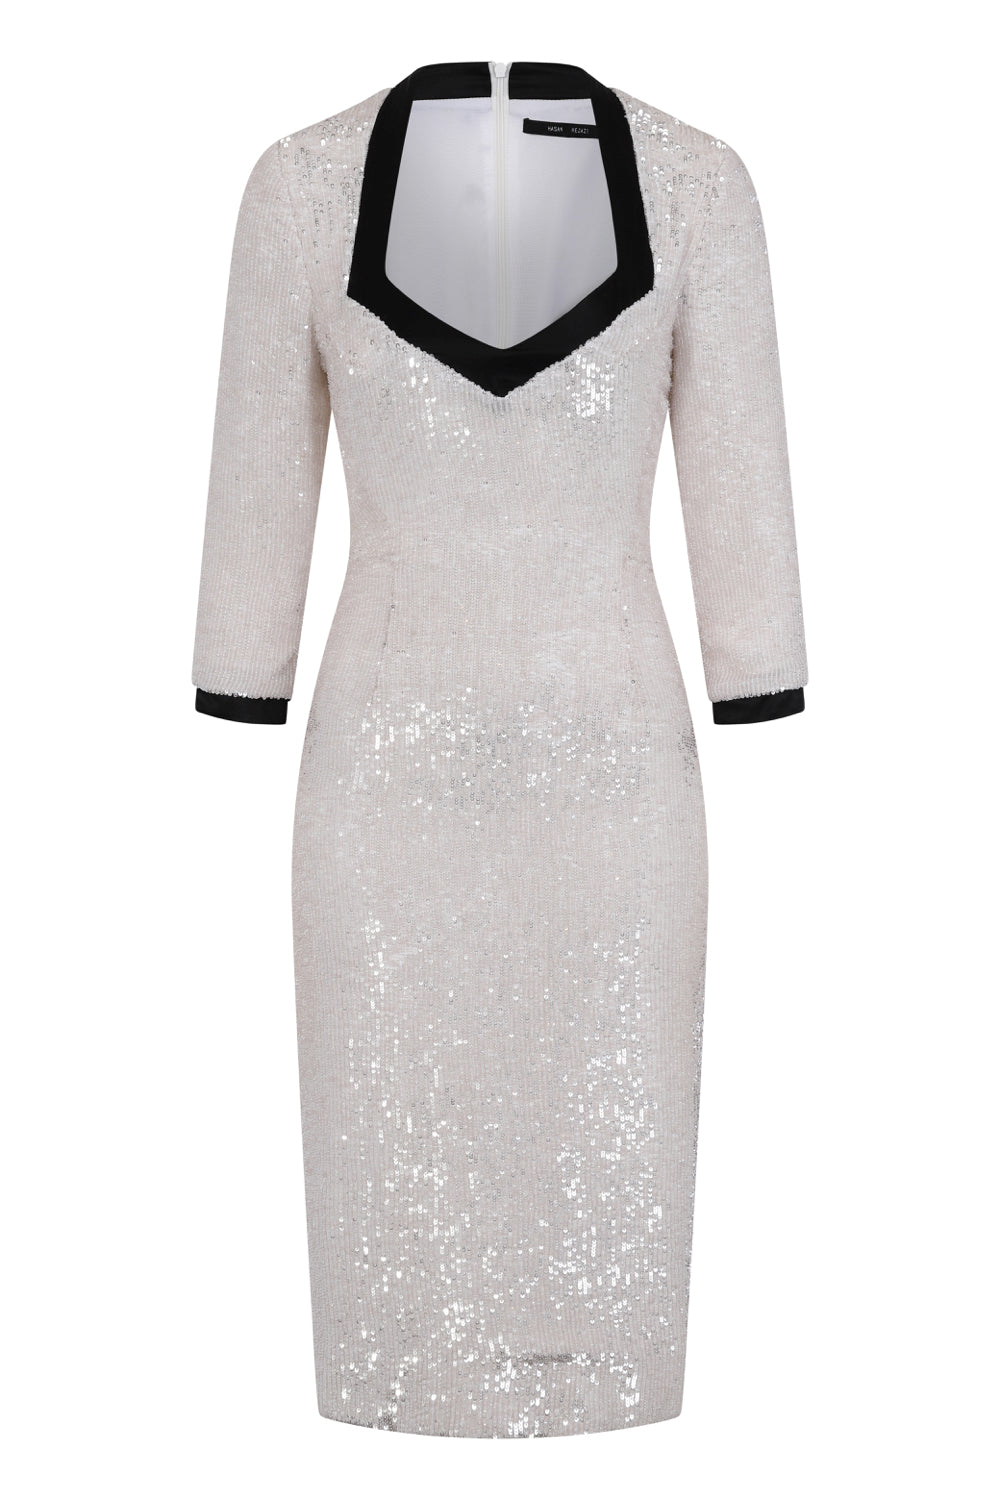 White sequin pencil dress